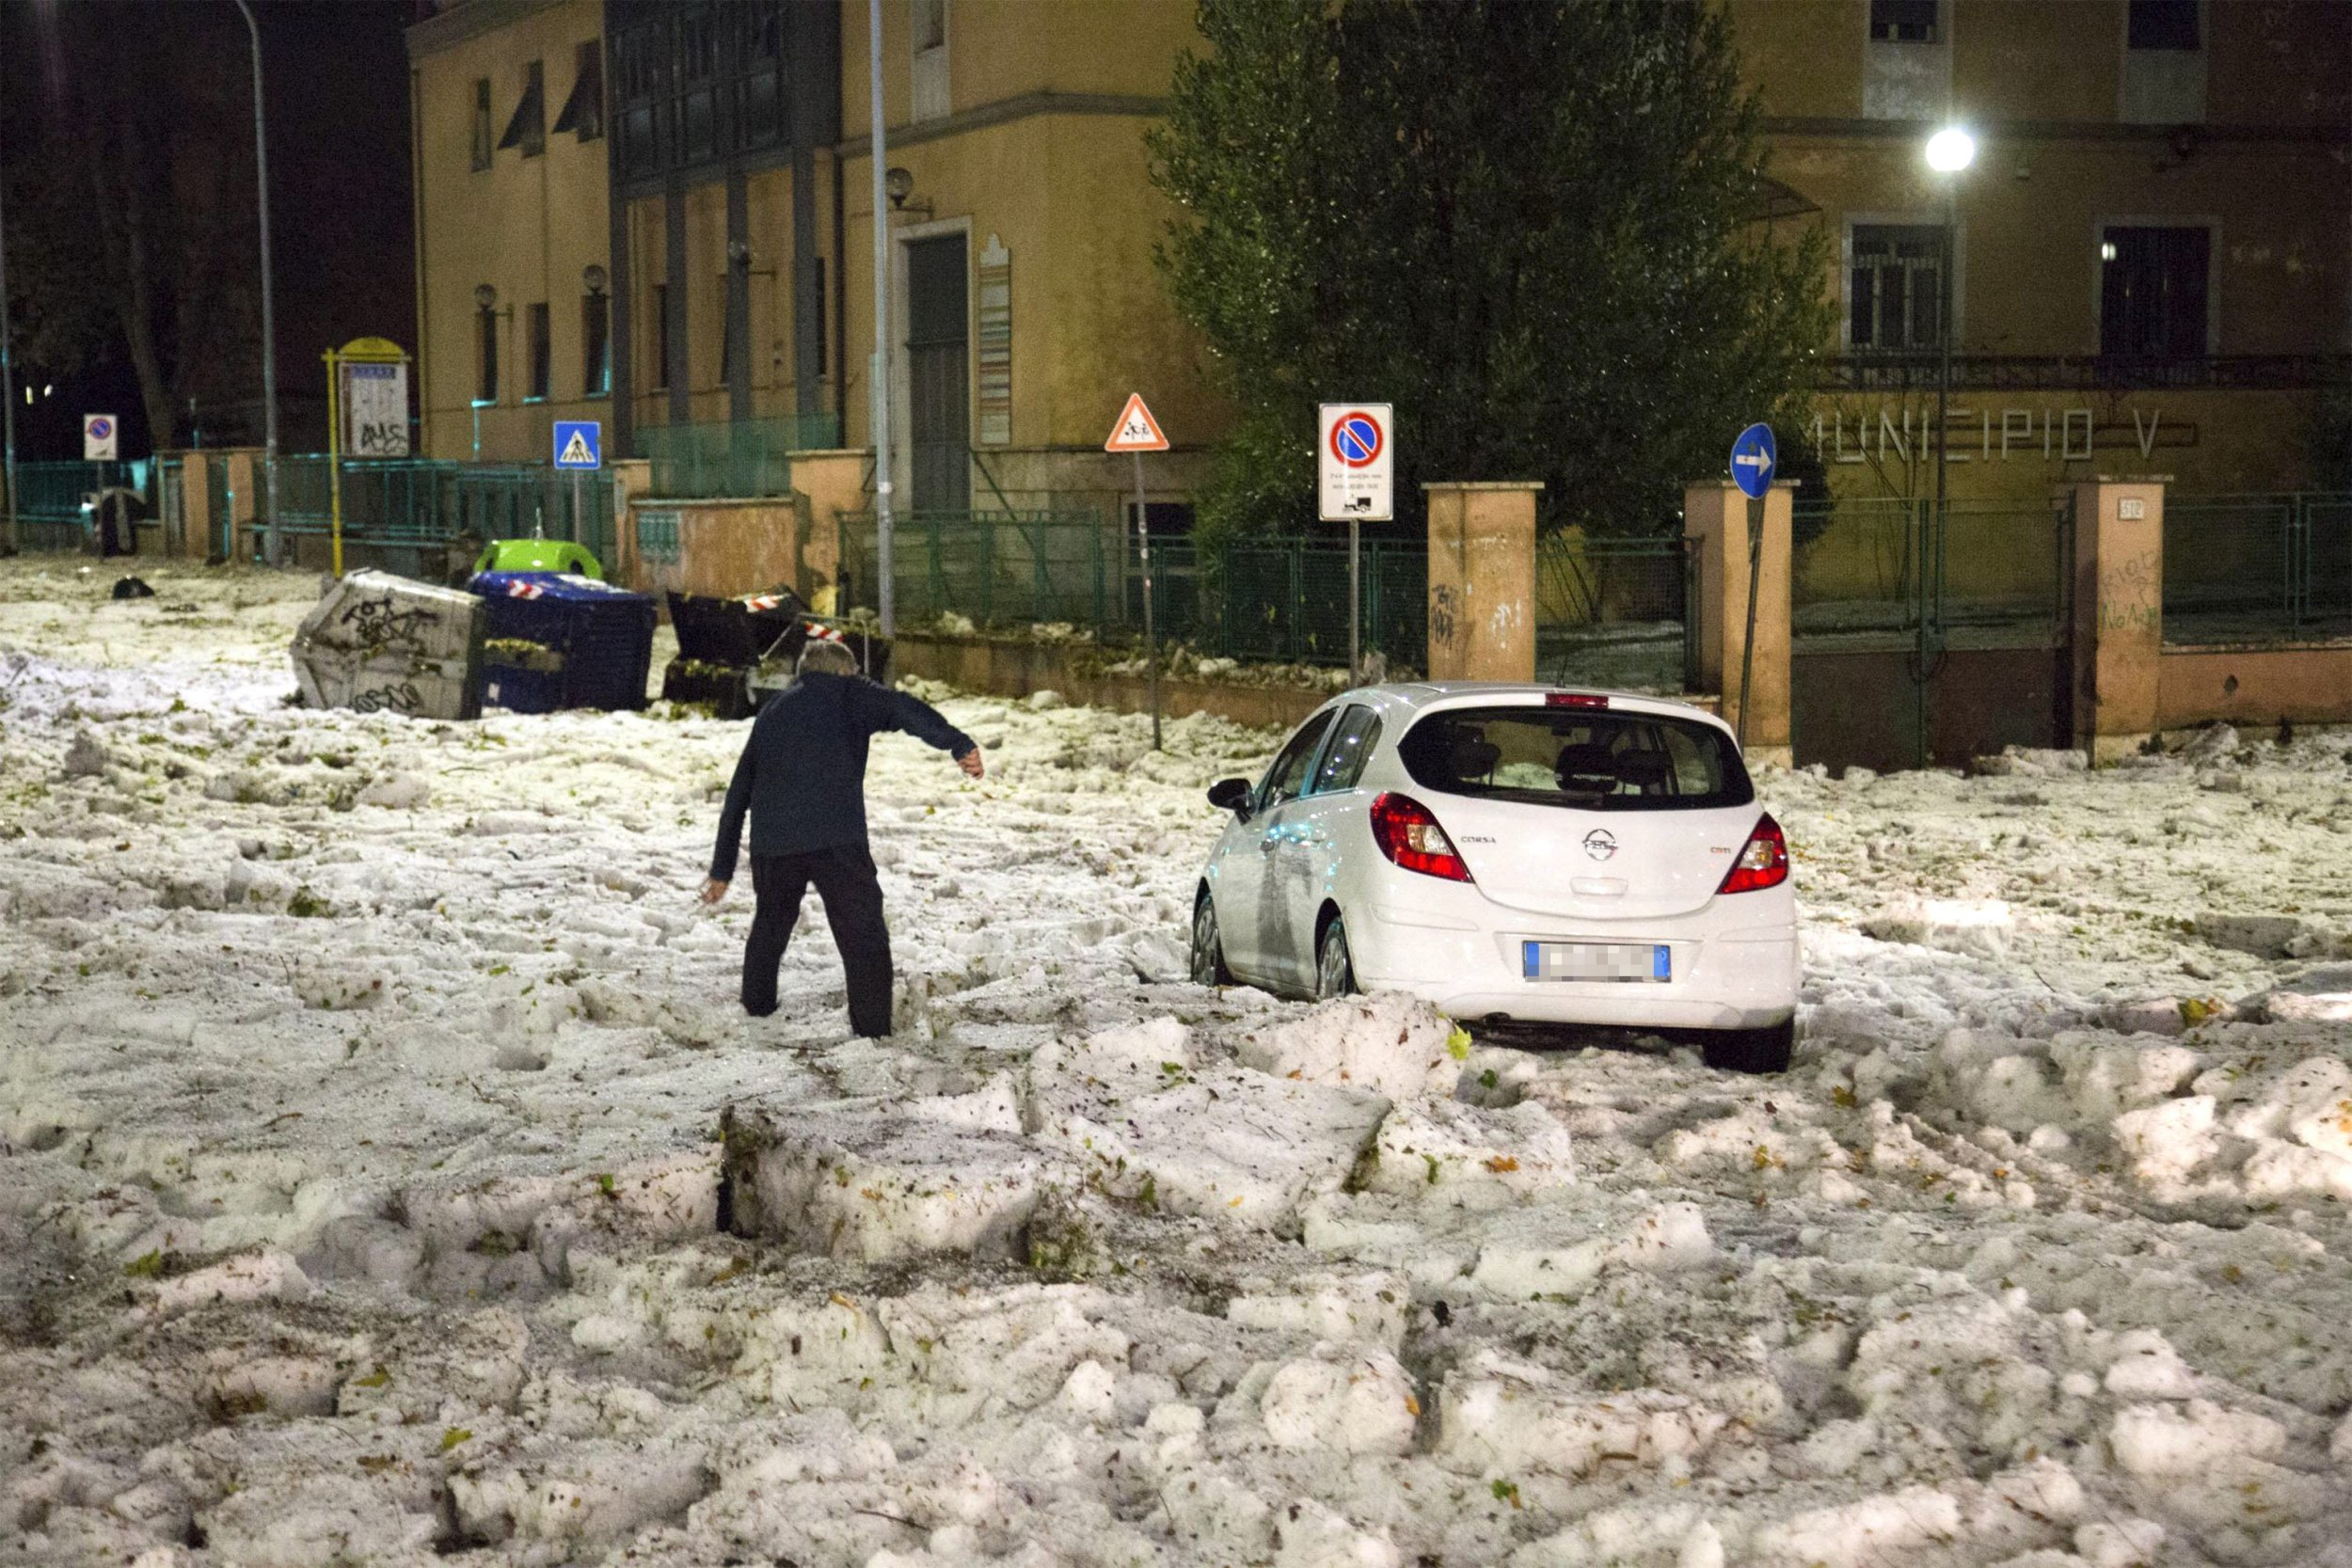 In this photo made available Monday Oct. 22, 2018 a man tries to reach a car blocked by ice after a hailstorm hit Rome in the evening of Sunday Oct. 21, 2018. The storm created flowing rivers of ice blocks and trapped dozen of drivers in their cars in the Eastern neighborhoods of Rome. (Massimo Percossi/ANSA via AP)